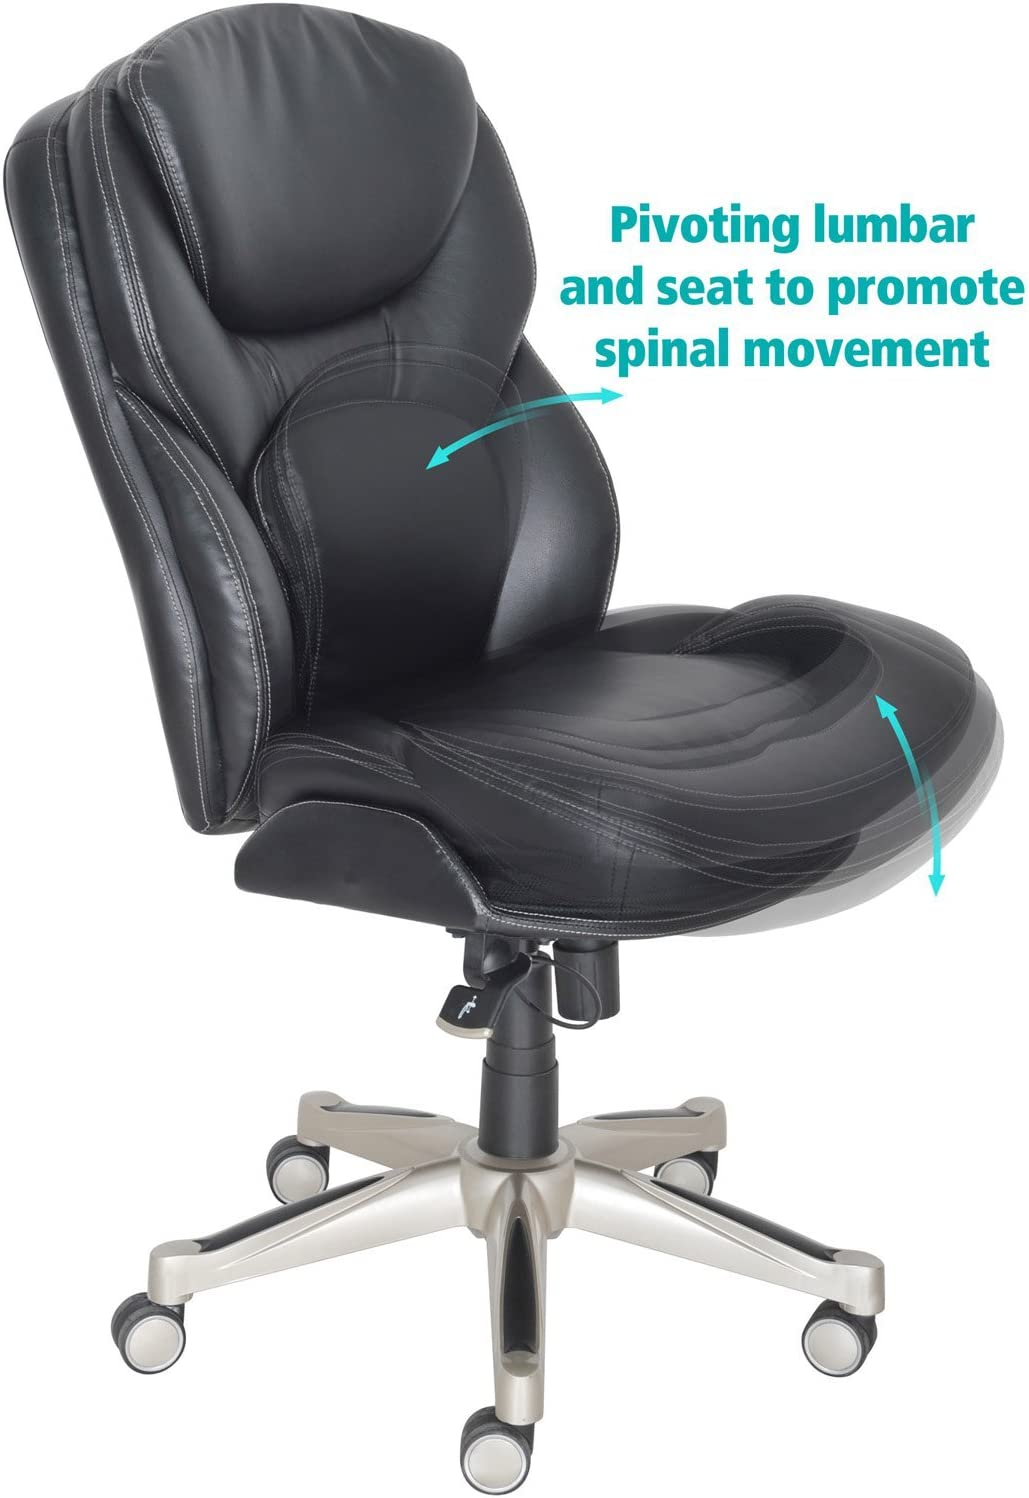 Serta Ergonomic Executive Office Motion Technology, Adjustable Mid Back  Desk Chair with Lumbar Support, Black Bonded Leather